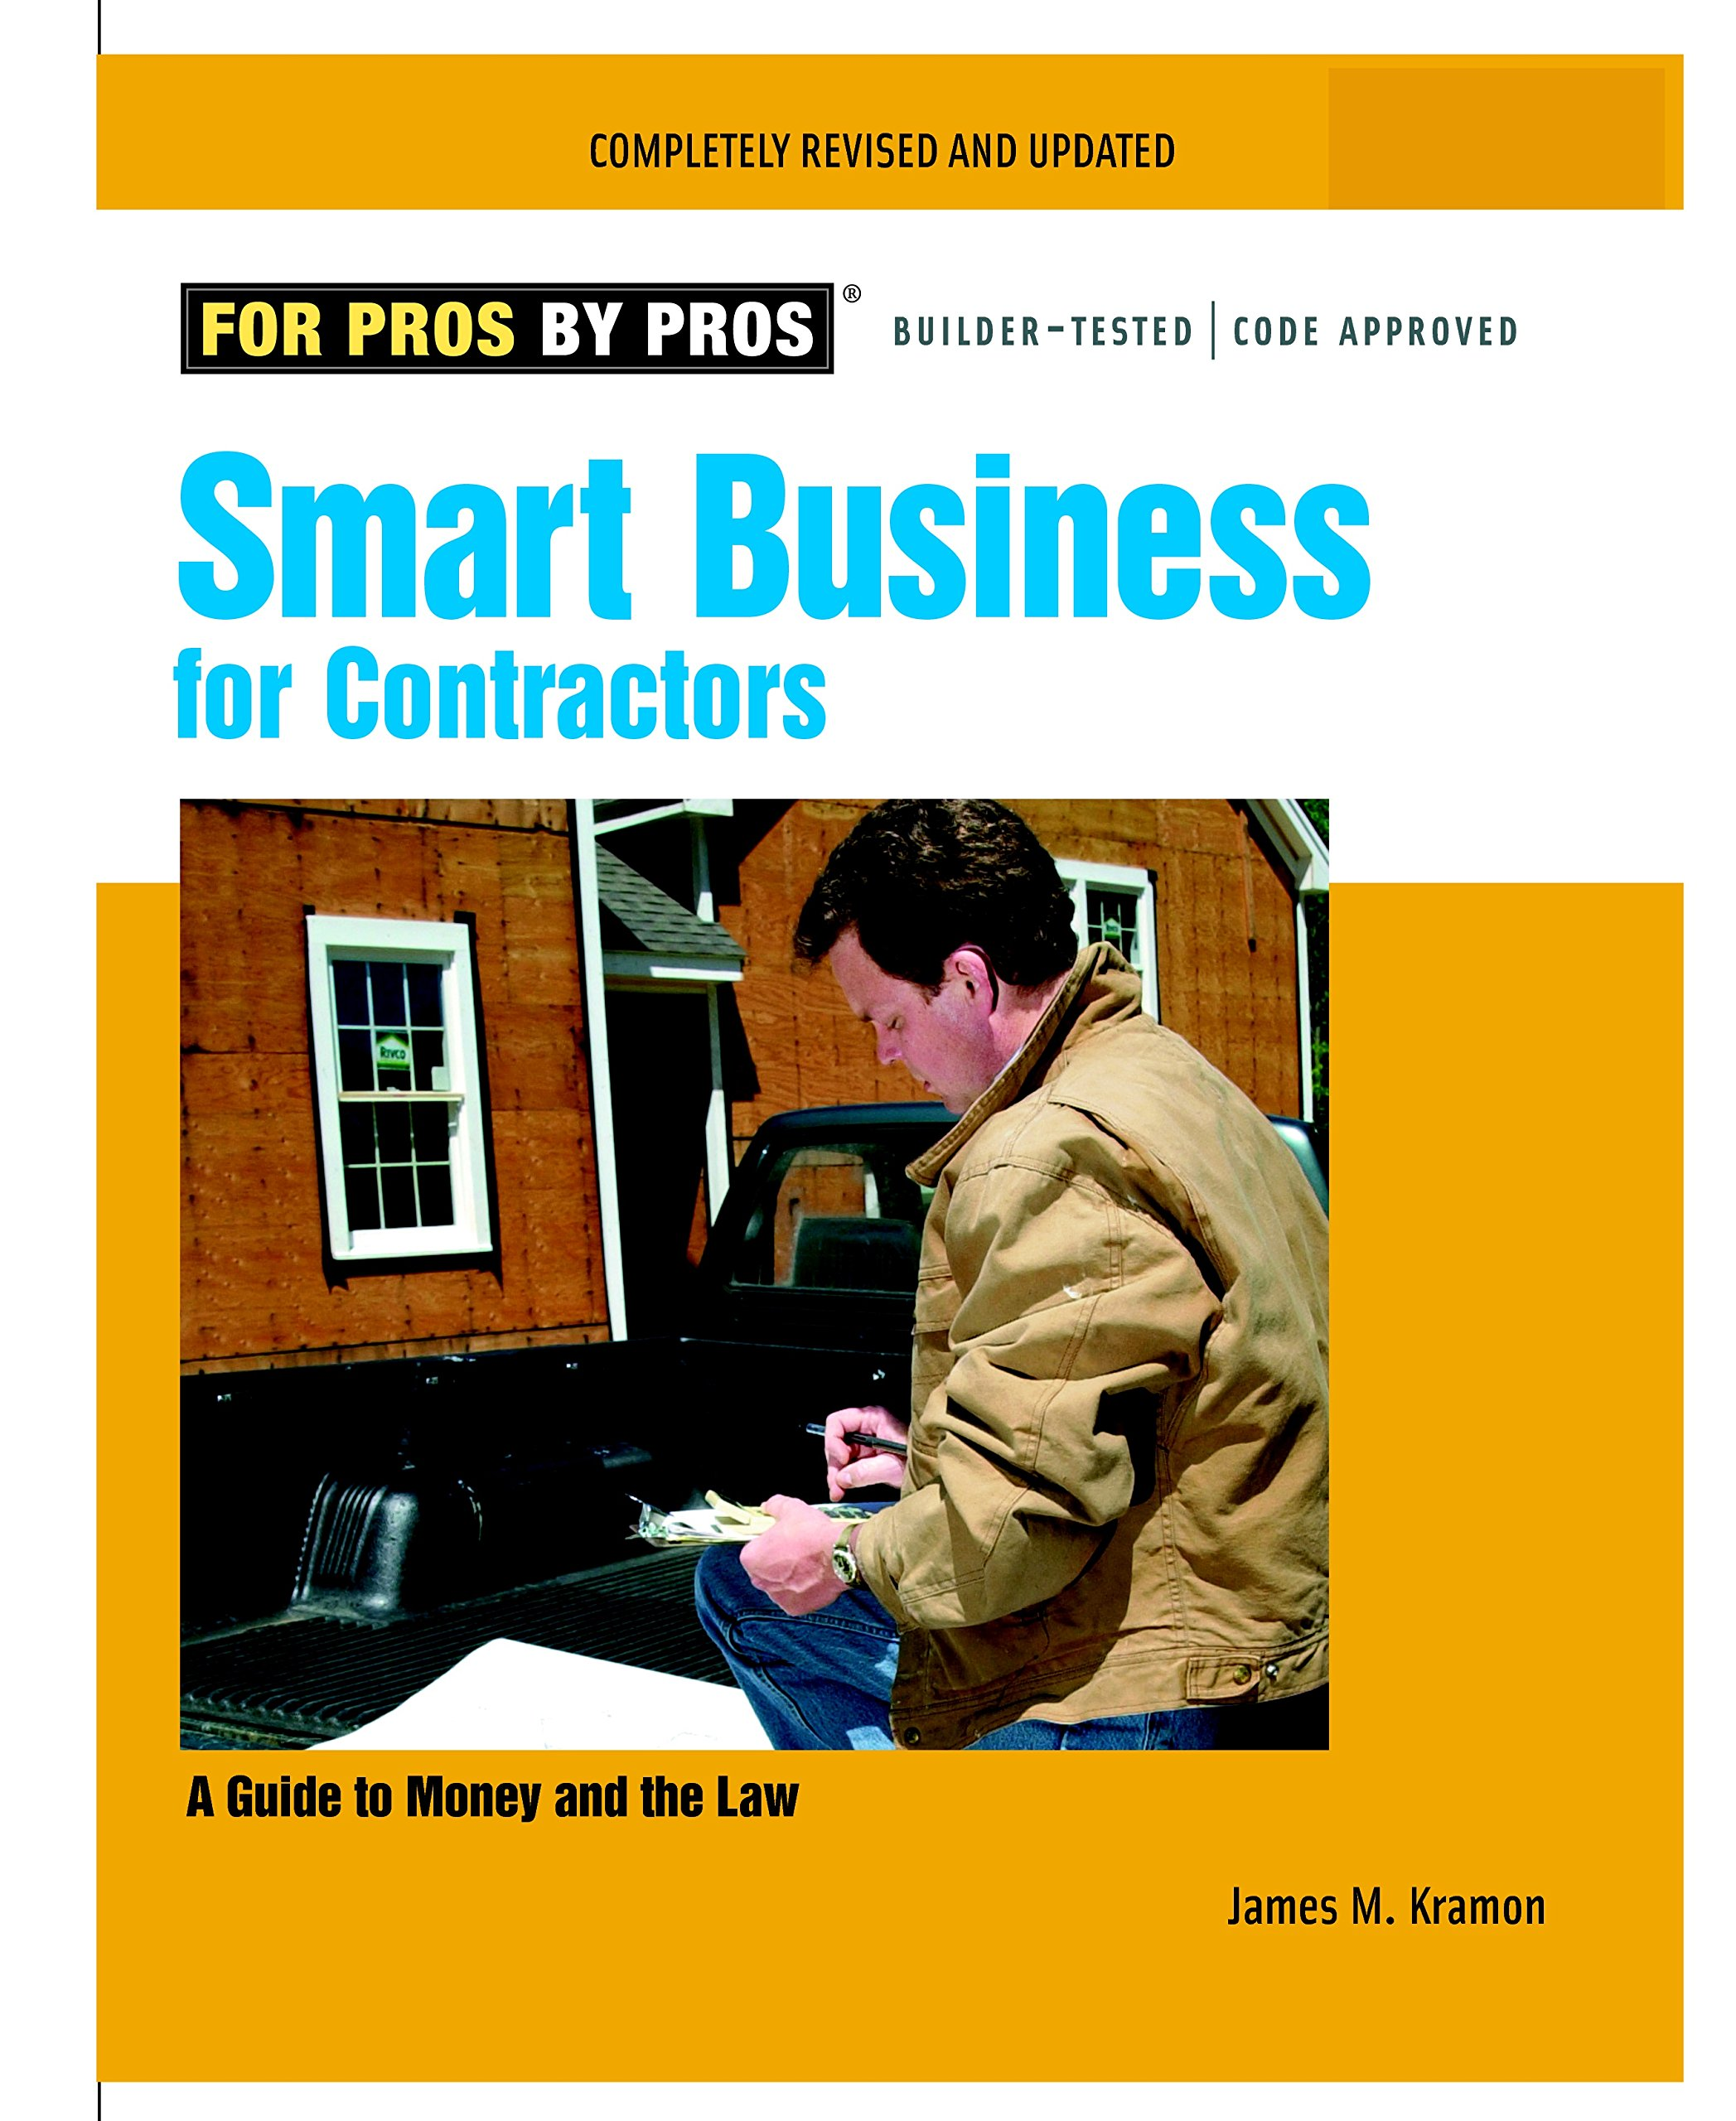 Smart Business for Contractors: A Guide to Money and the Law (For Pros By Pros)